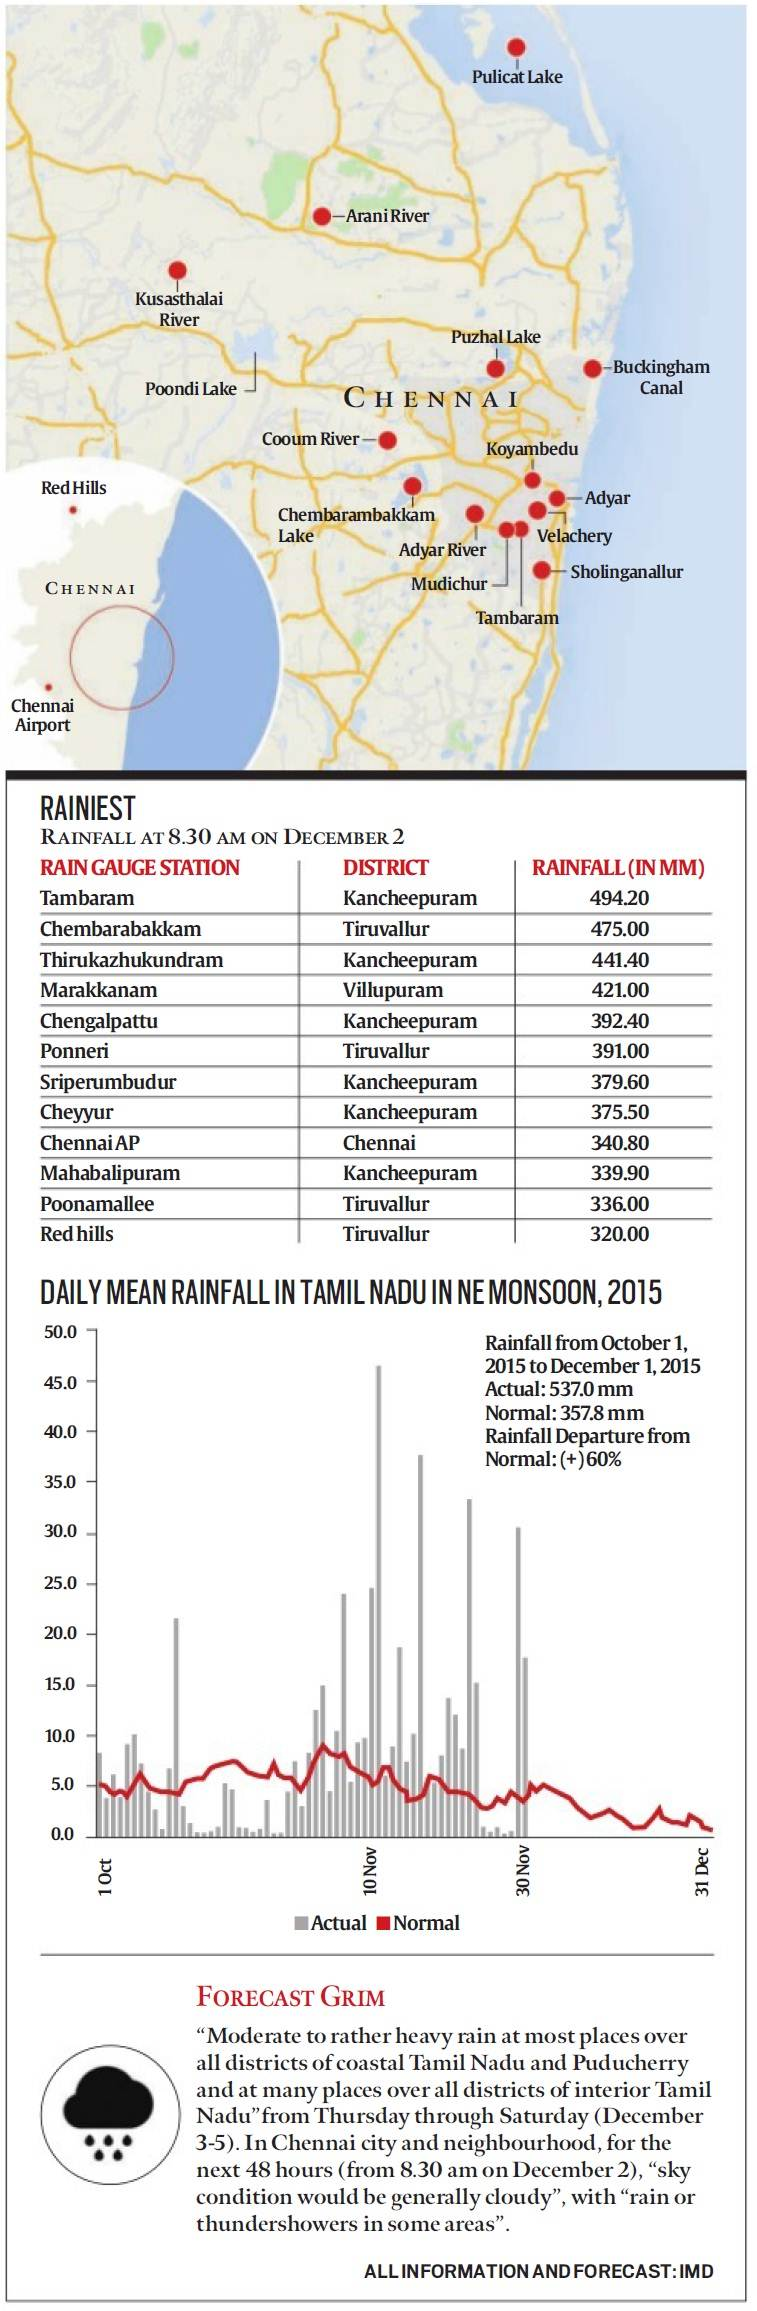 chennai floods, why chennai has floods, chennai rains, chennai monsoons